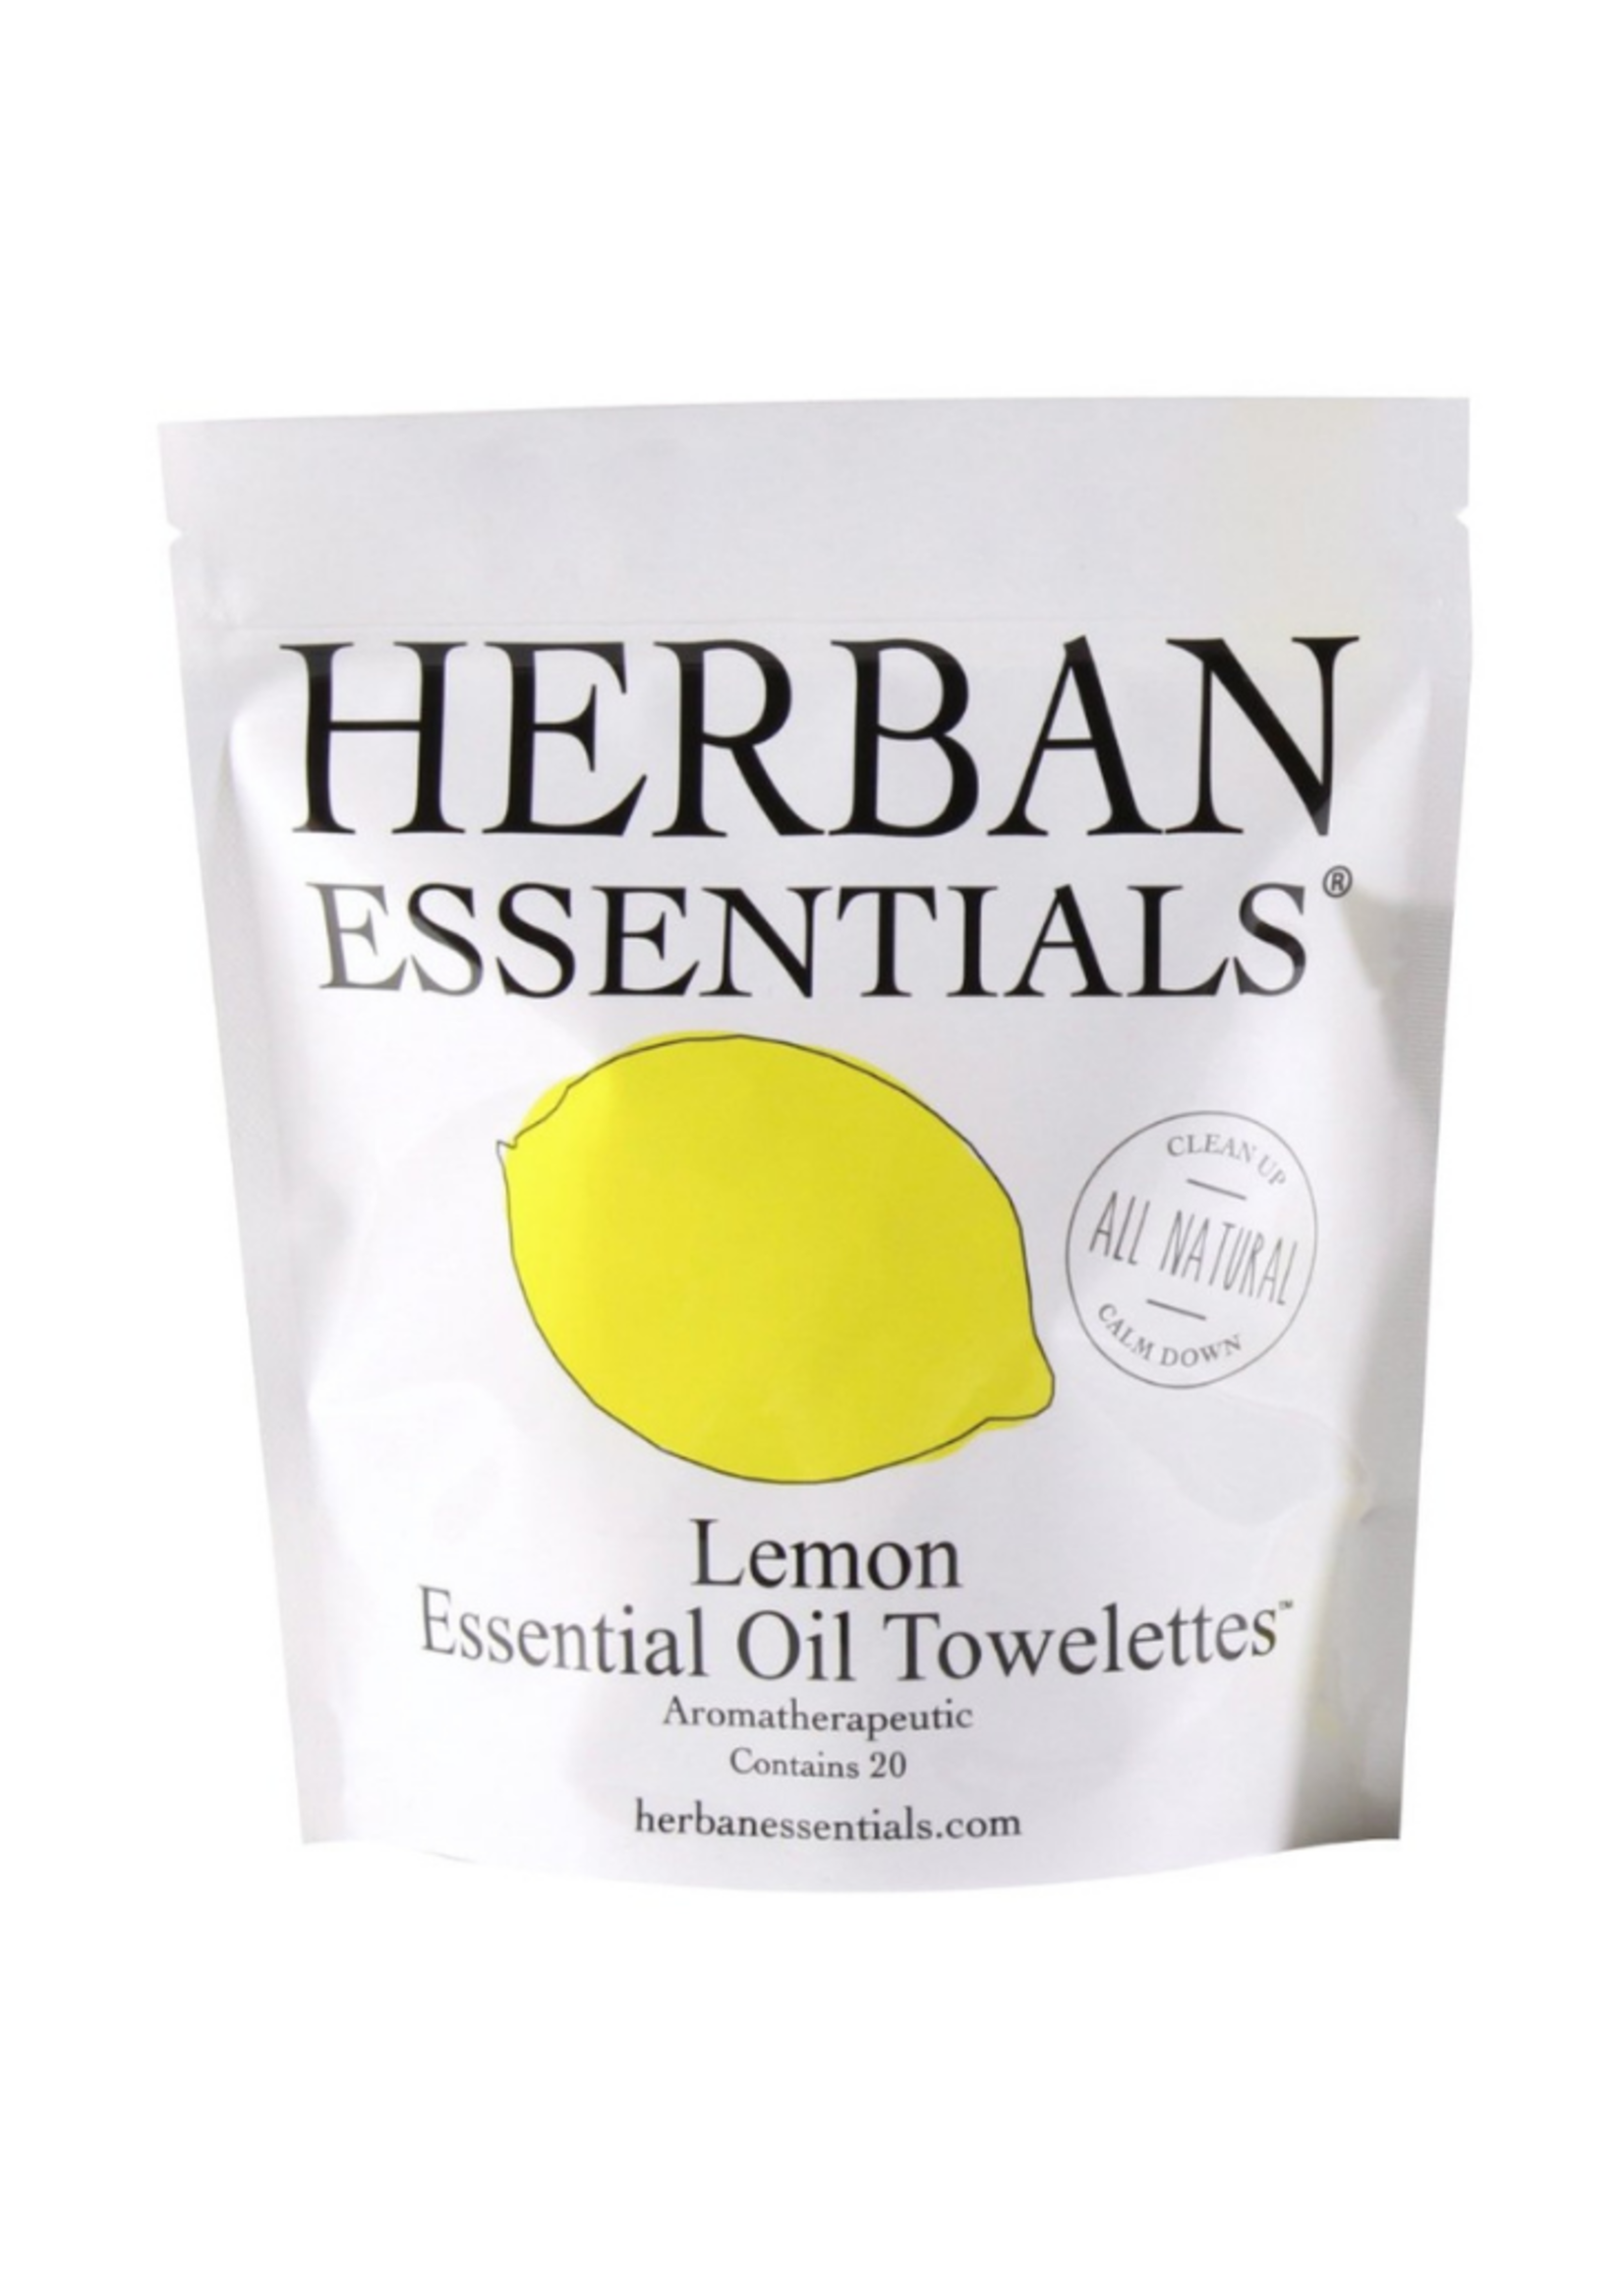 Herban Essentials Lemon Toweletts